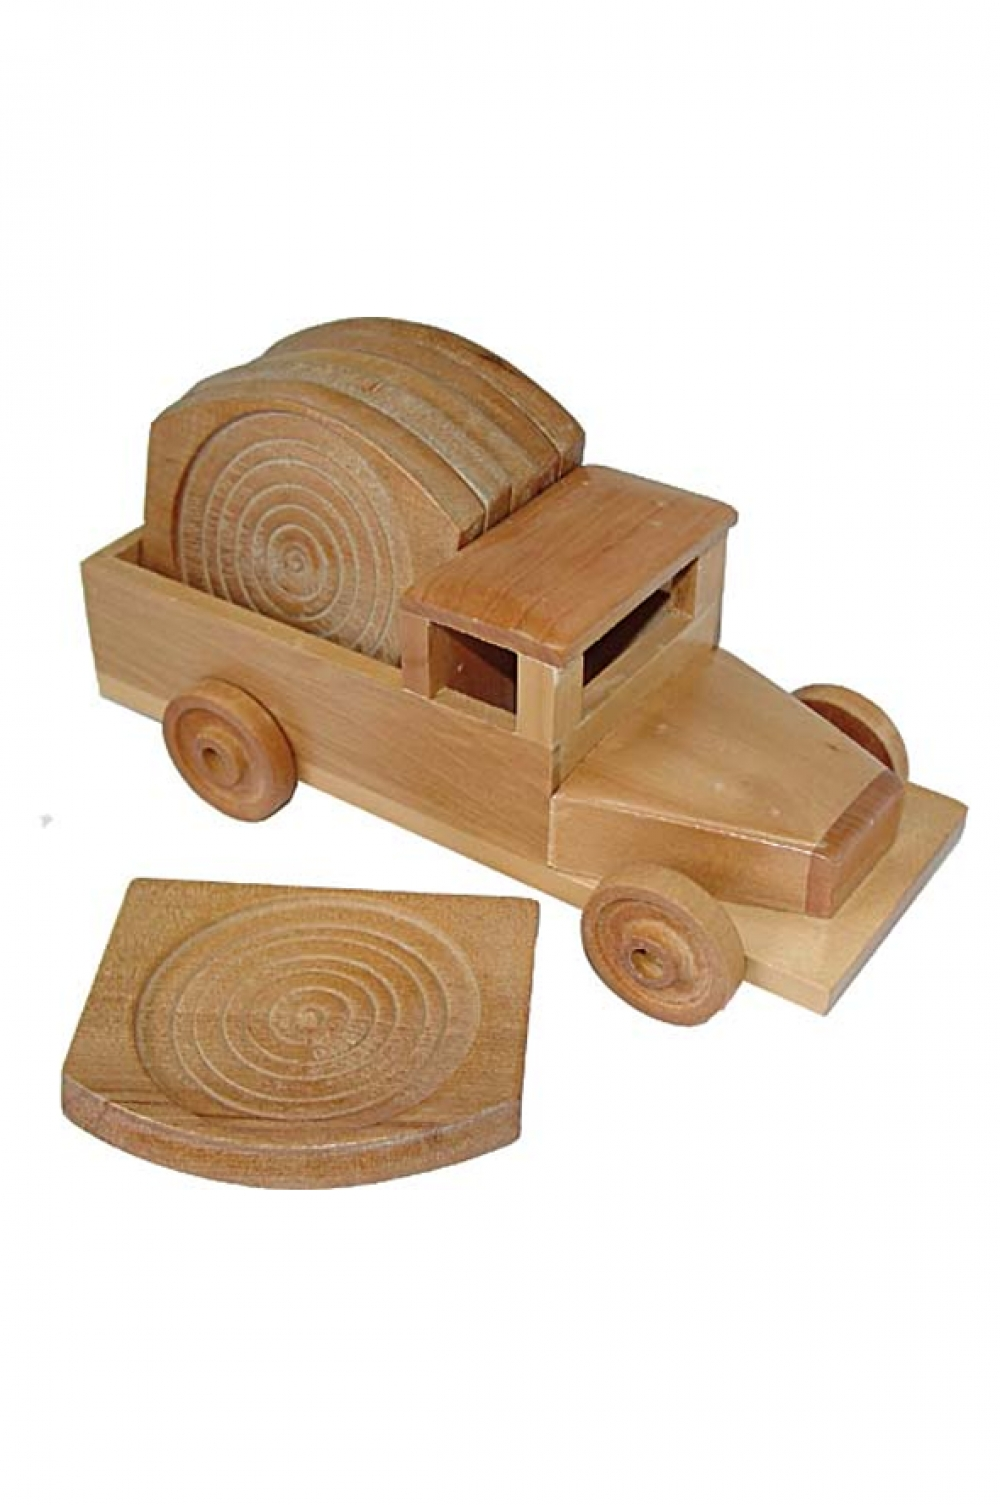 10 Most Popular Wood Gift Ideas For Him wooden car coaster set promotional items and gifts gifts ideas for 2020